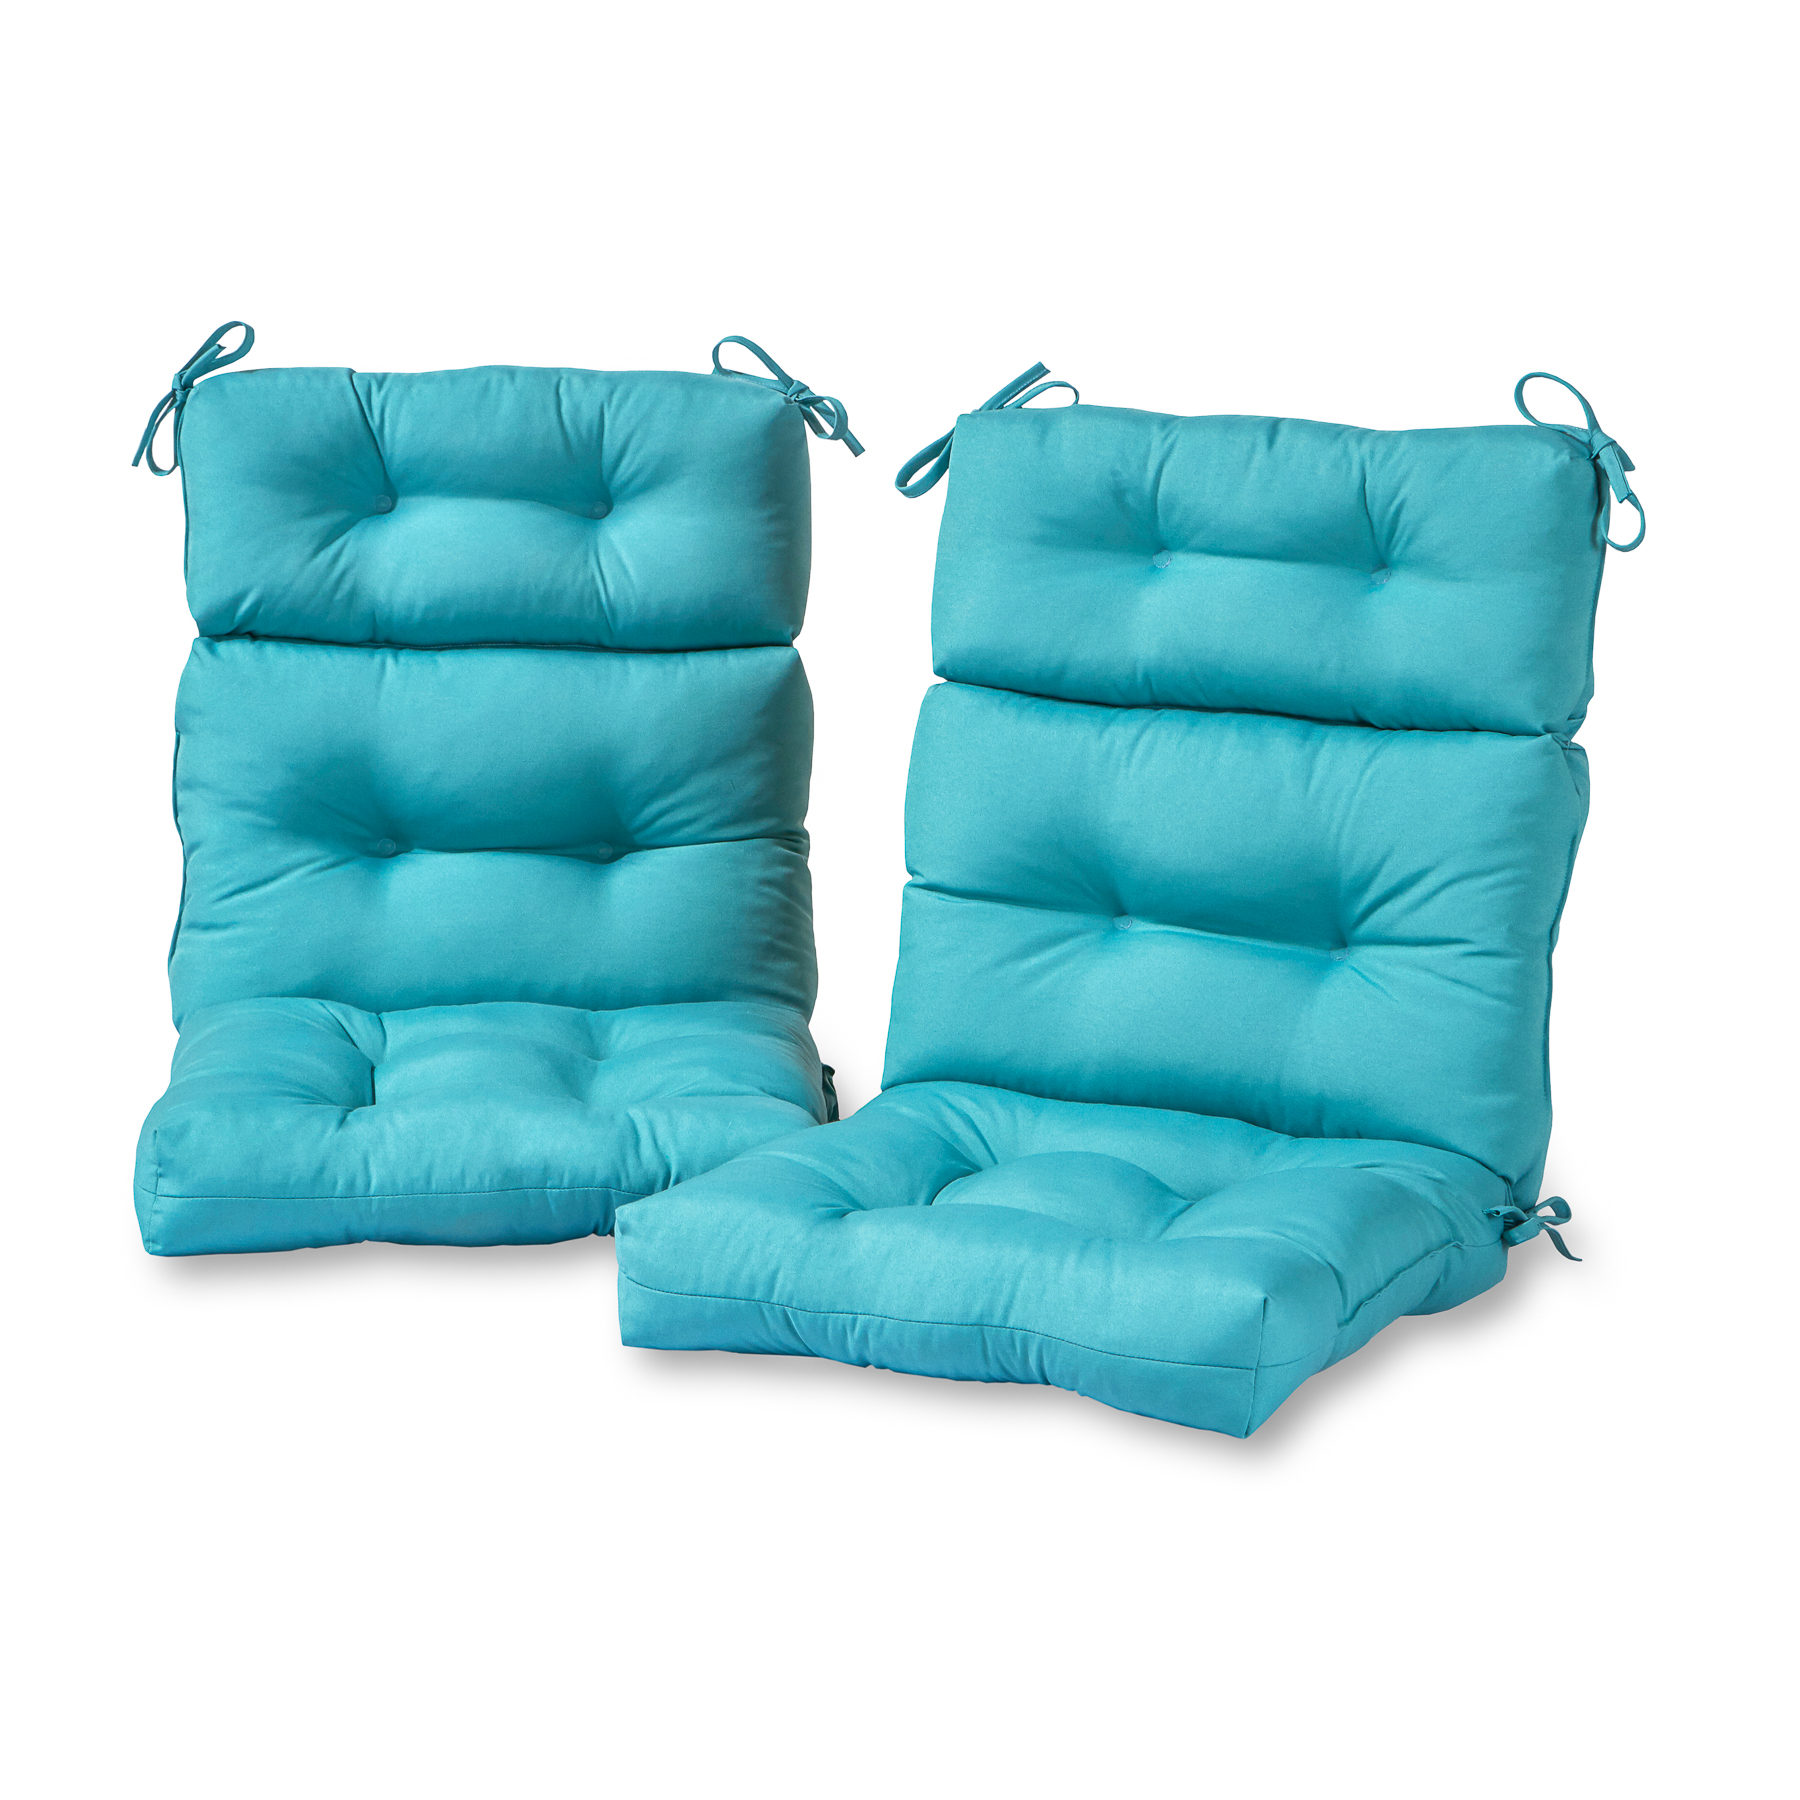 Greendale Home Fashions Solid Outdoor High Back Chair Cushion, Set of 2